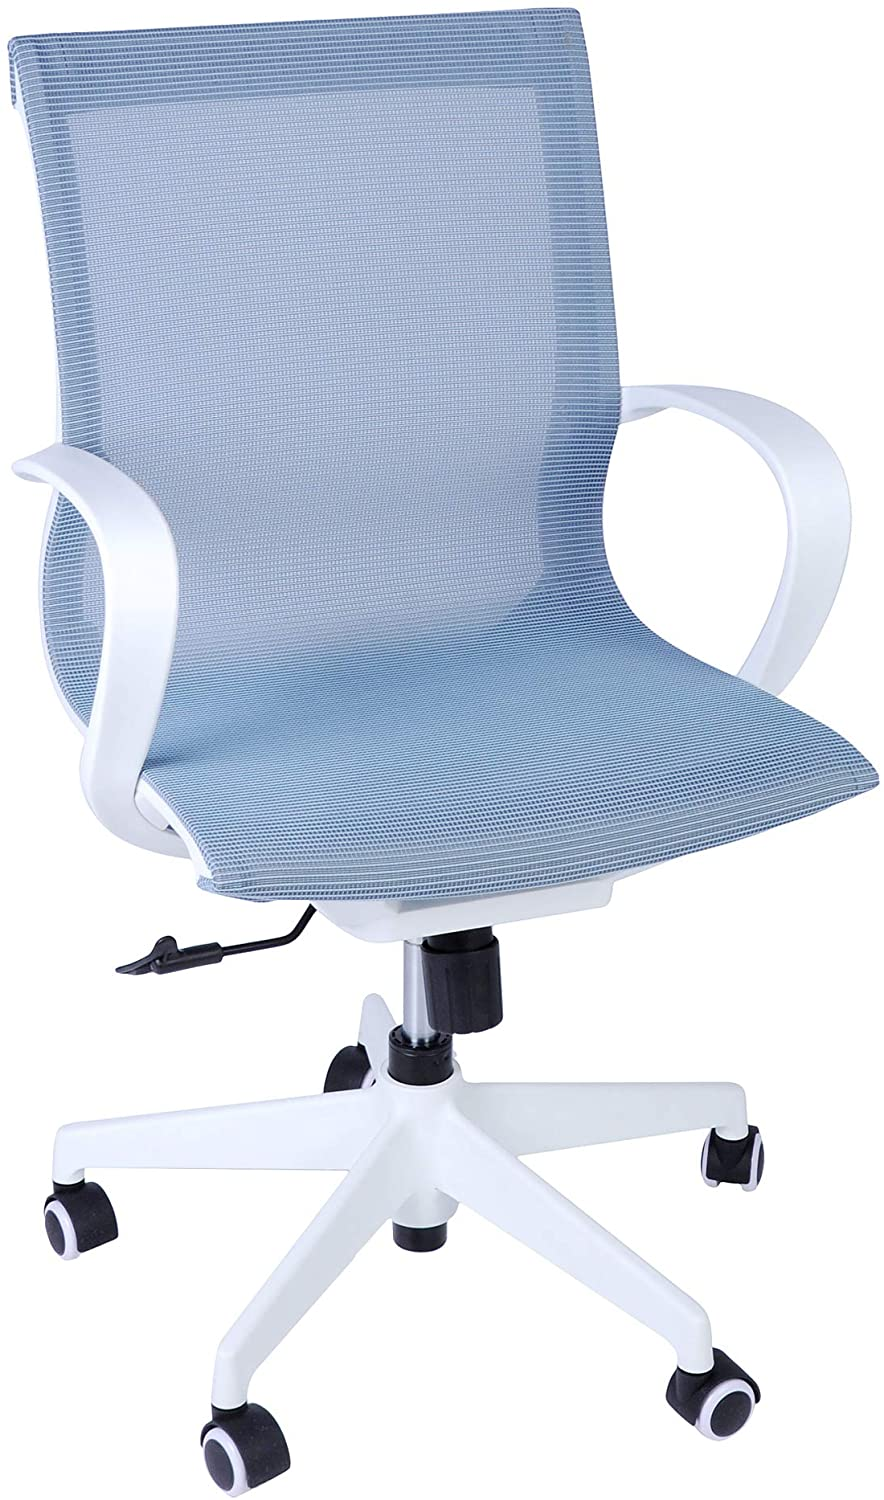 LUCKYERMORE Home Office Chair Swivel Task Chair 300Lb Capacity Heavy Duty Mesh Chair Breathable Back Seat Height Adjustable for Work Read Rest, Blue White